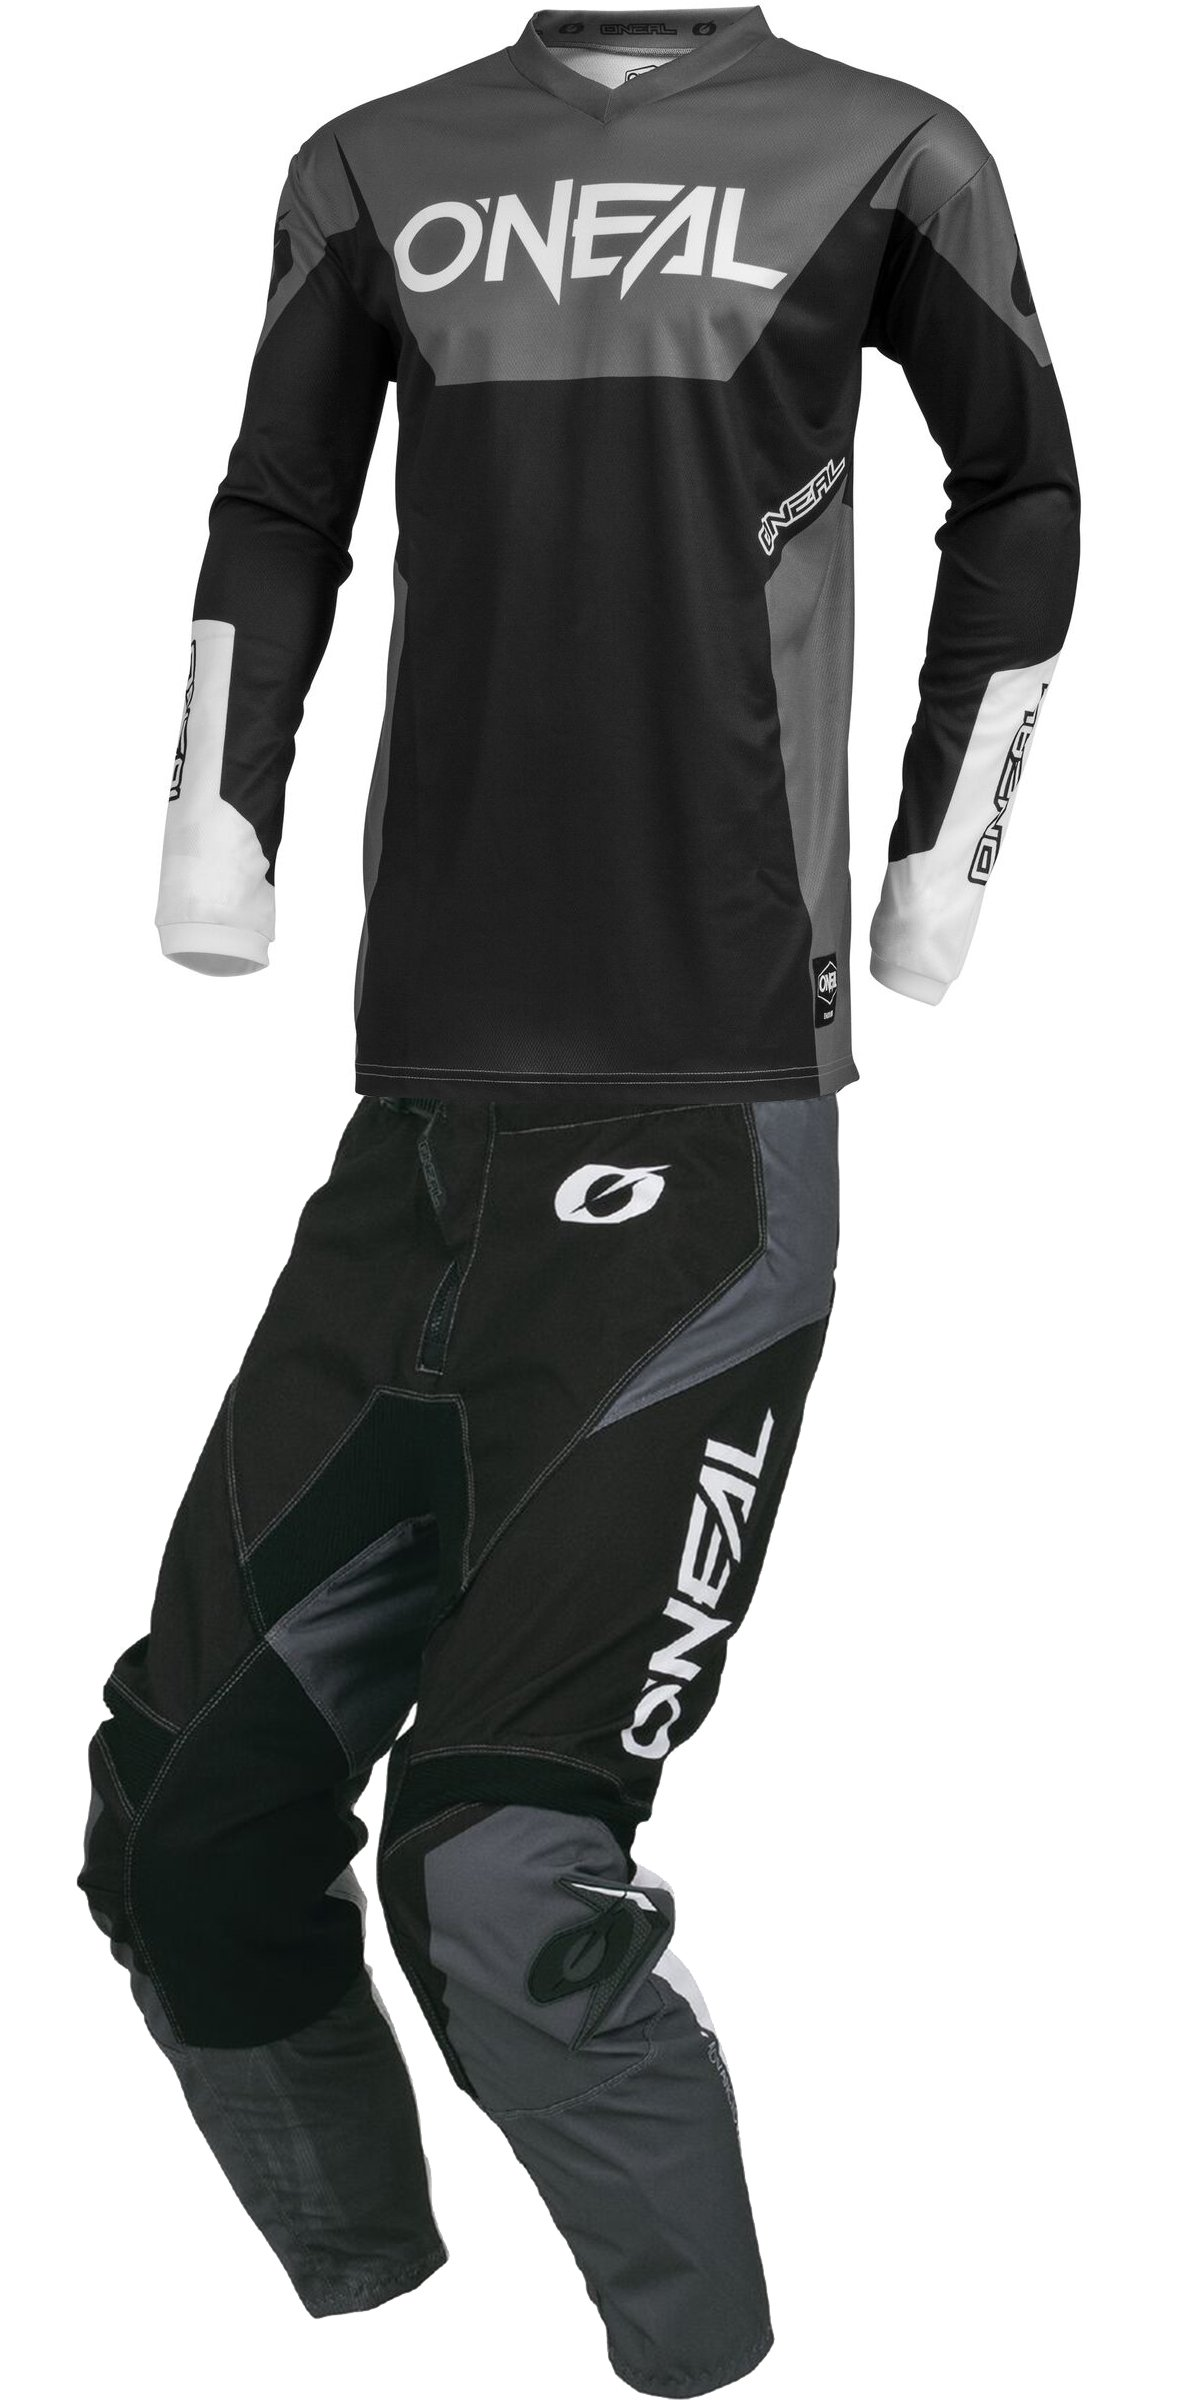 O'Neal - 2019 Element Racewear (Mens Black & Grey Large/32W) MX Riding Gear Combo Set, Motocross Off-Road Dirt Bike Moisture Wicking Jersey & Light Weight Durable Wear Resistant Panels Pant